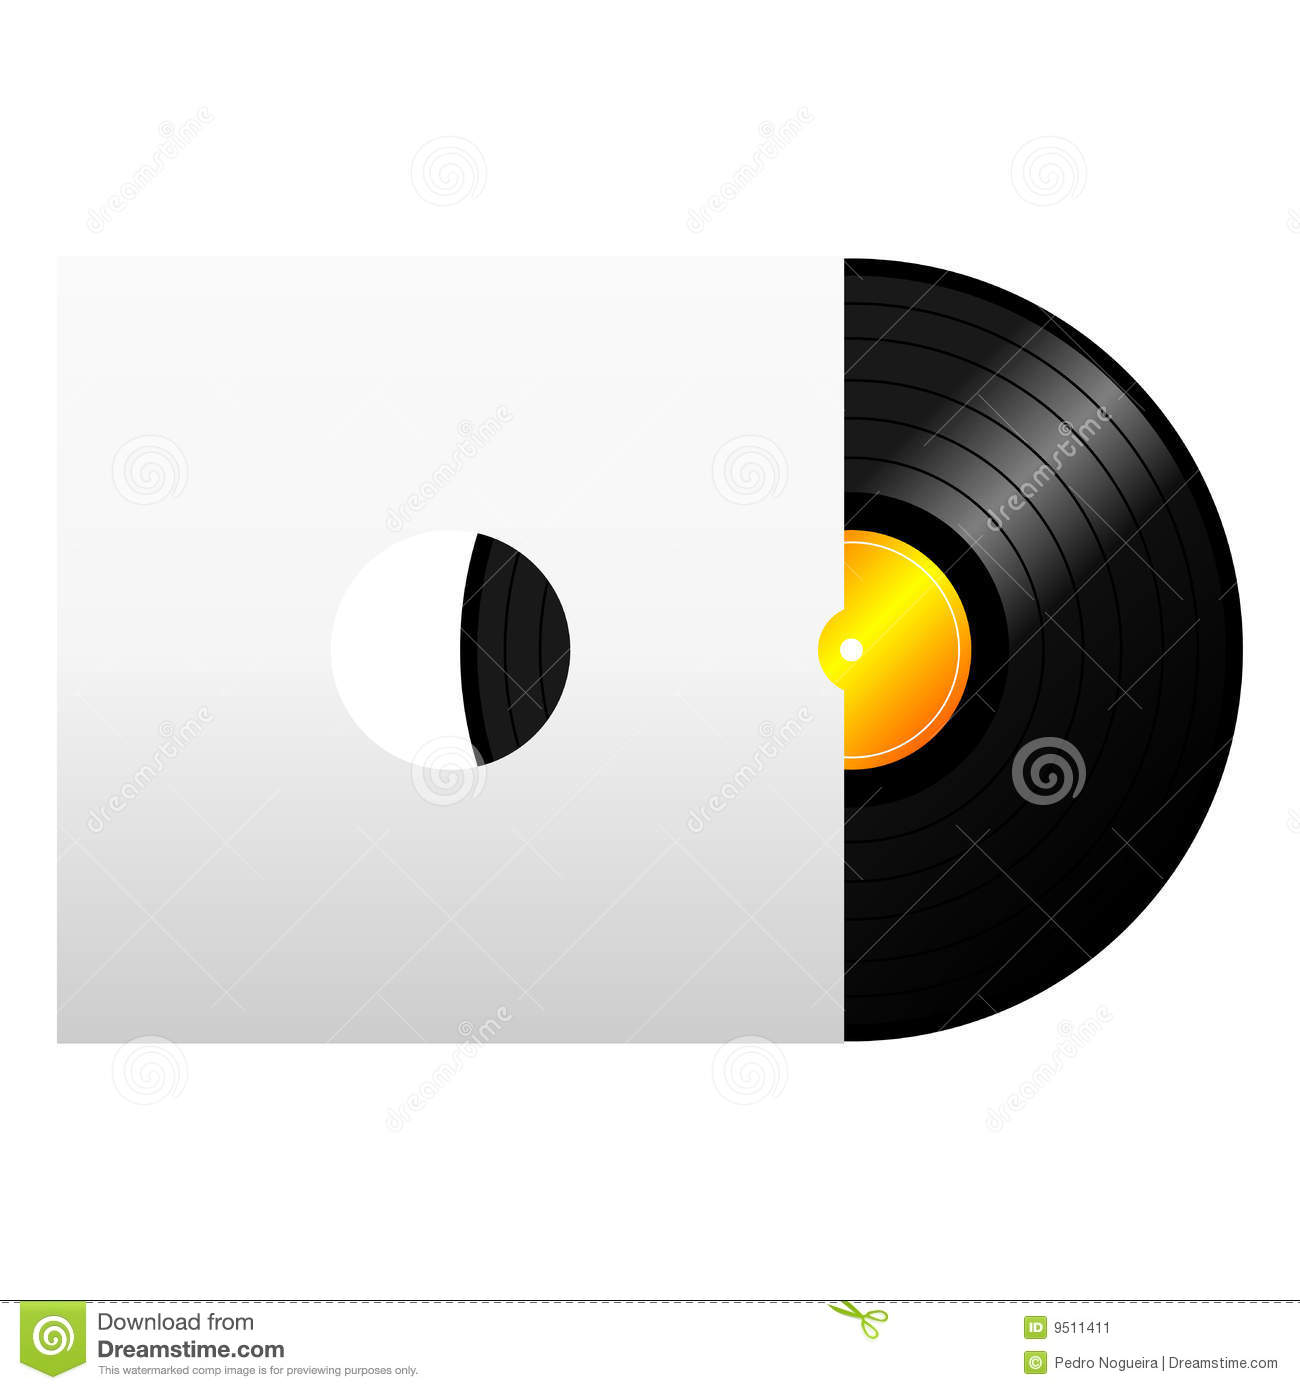 Vinyl Record With Cover Stock Image - Image: 9511411